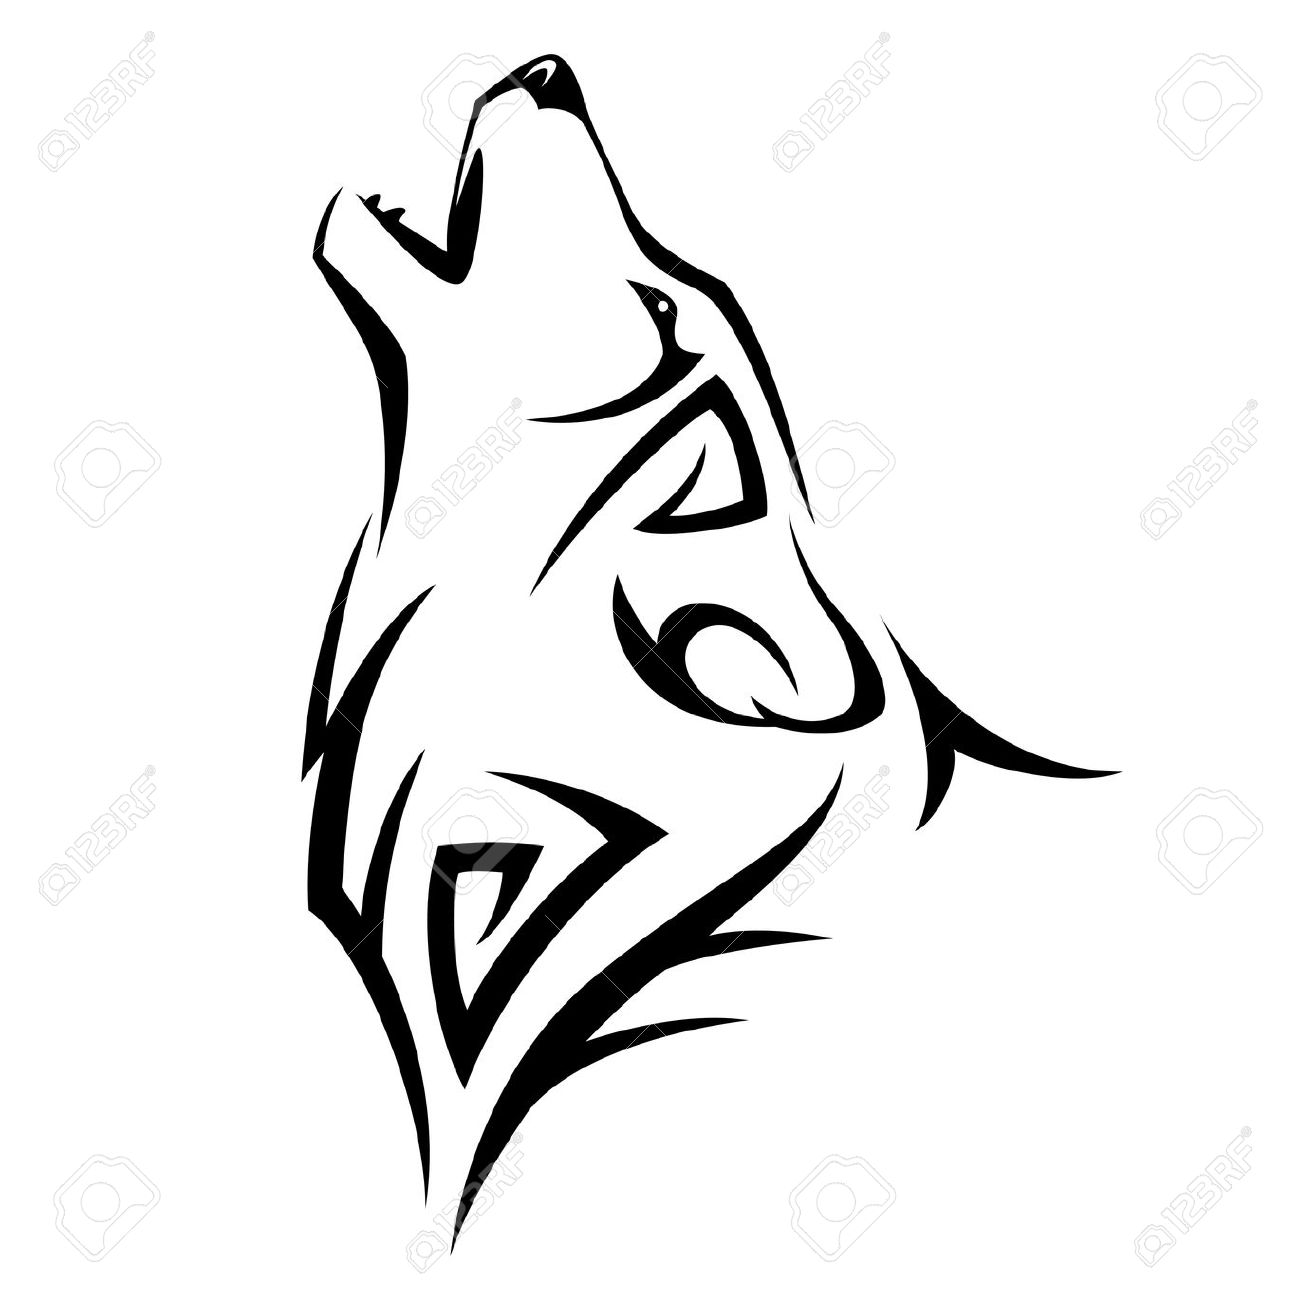 900+ Best Tribal wolf tattoos for Men and Women Updated Daily.